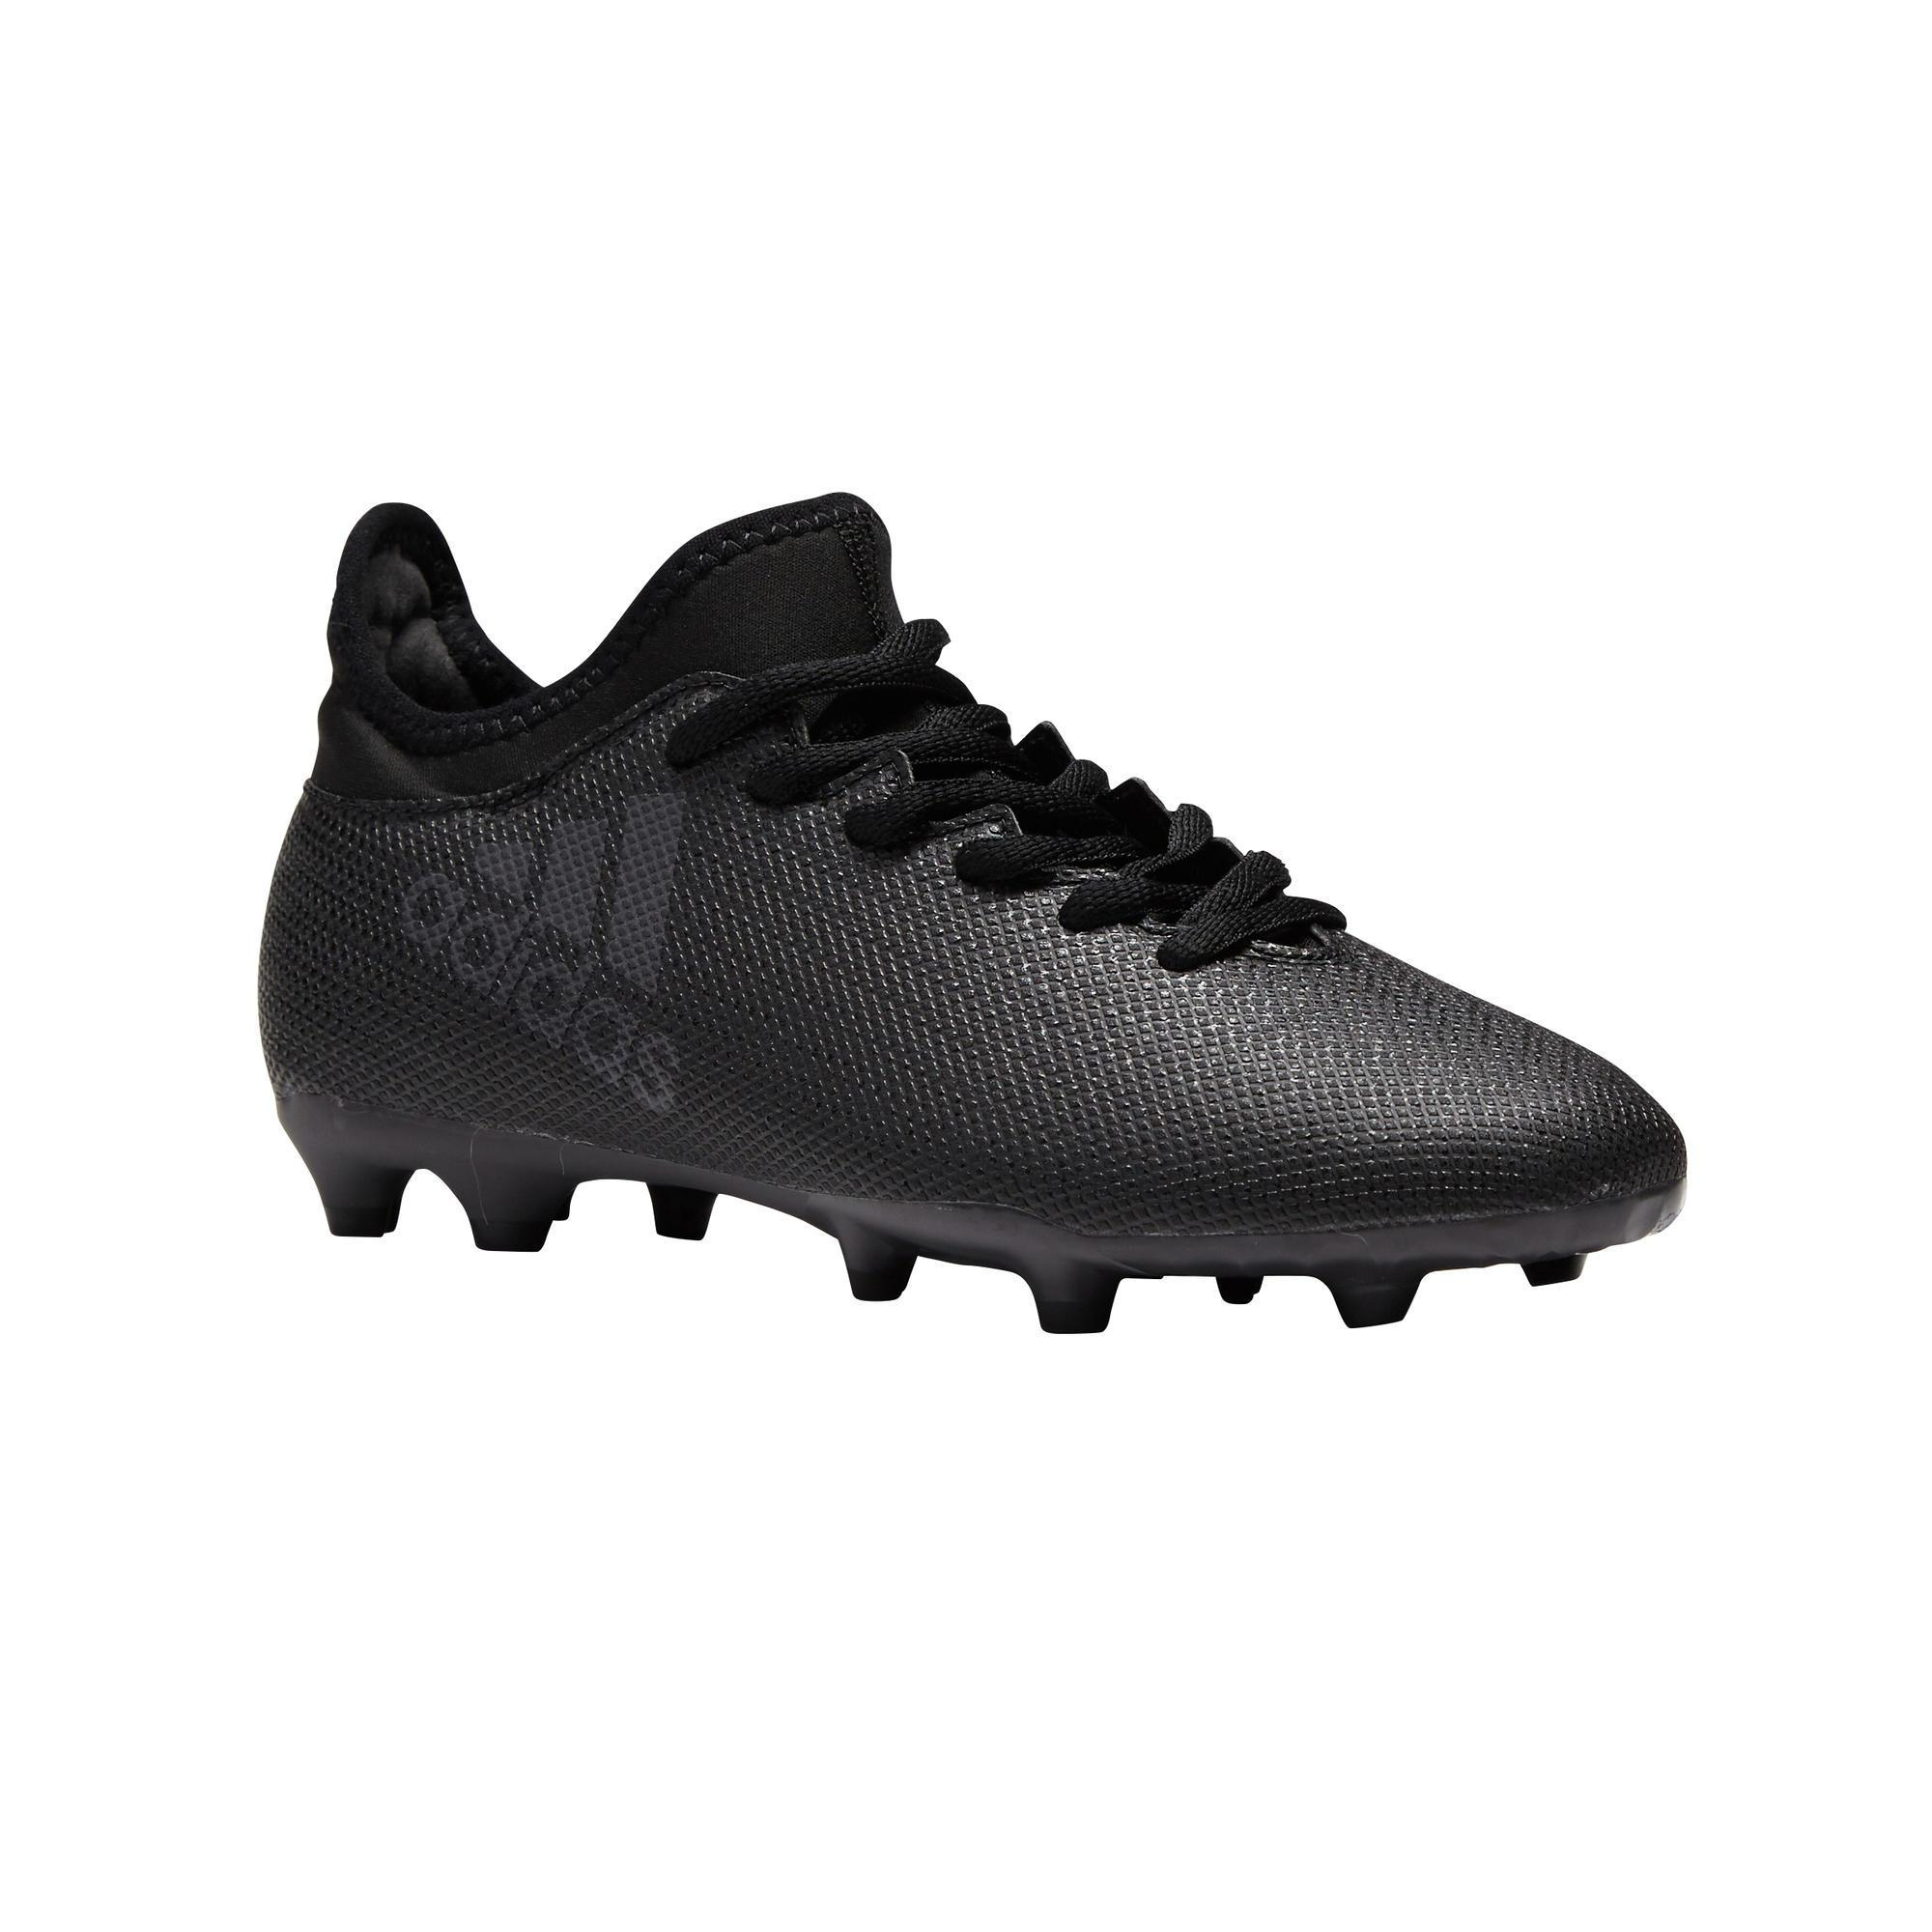 Merchandising Nike Ce Rgqprx 33 Noires Football Enfant Chaussures 87ospc qEw6fTnX